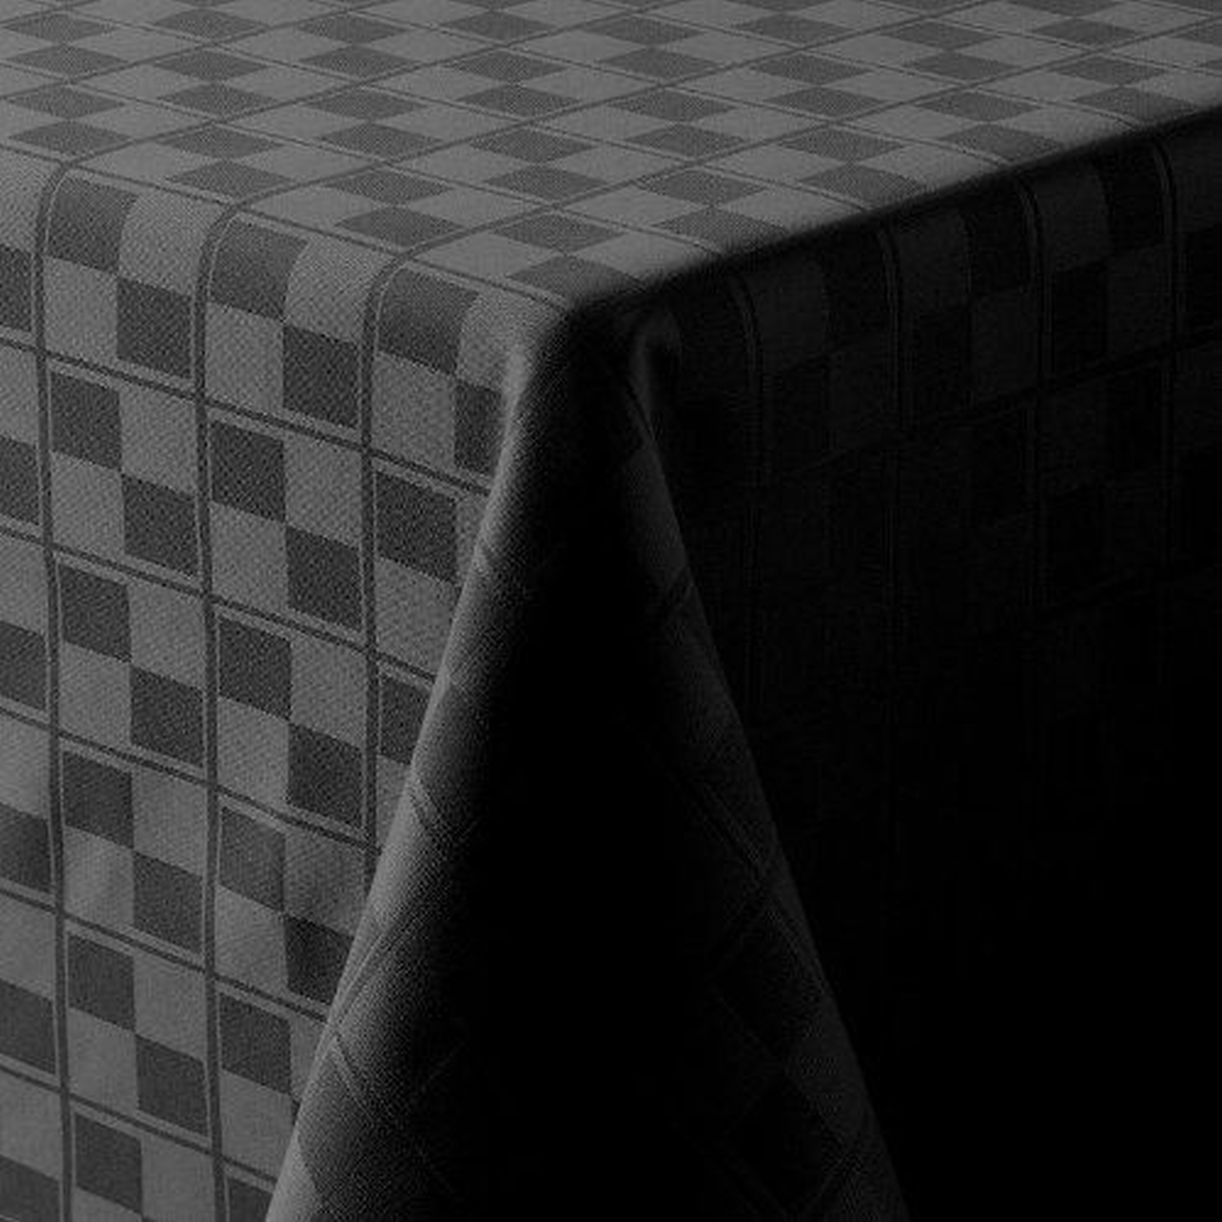 Food Network Black Microfiber Tablecloth Checkered Table Cloth 60x102 Oval